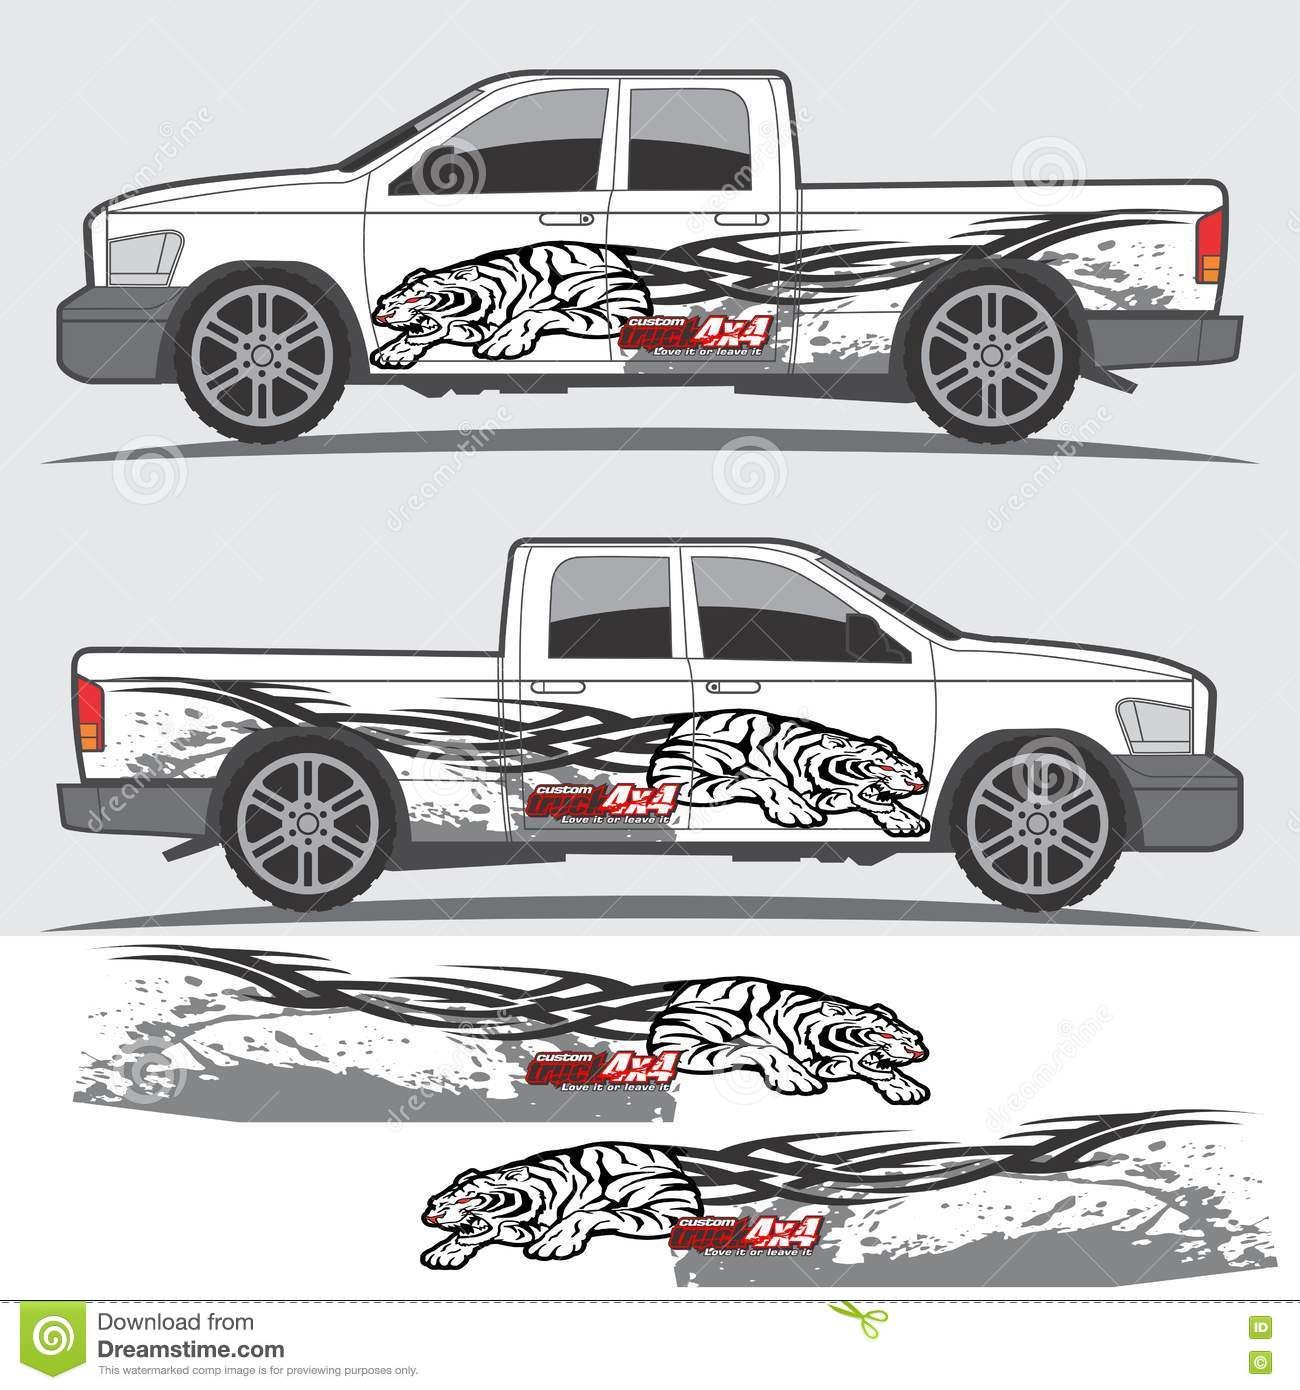 Car design sticker vector graphics - Stock Car Graphic Designs Stock Illustration Truck Vehicle Decal Graphic Design Kit Car Van Other